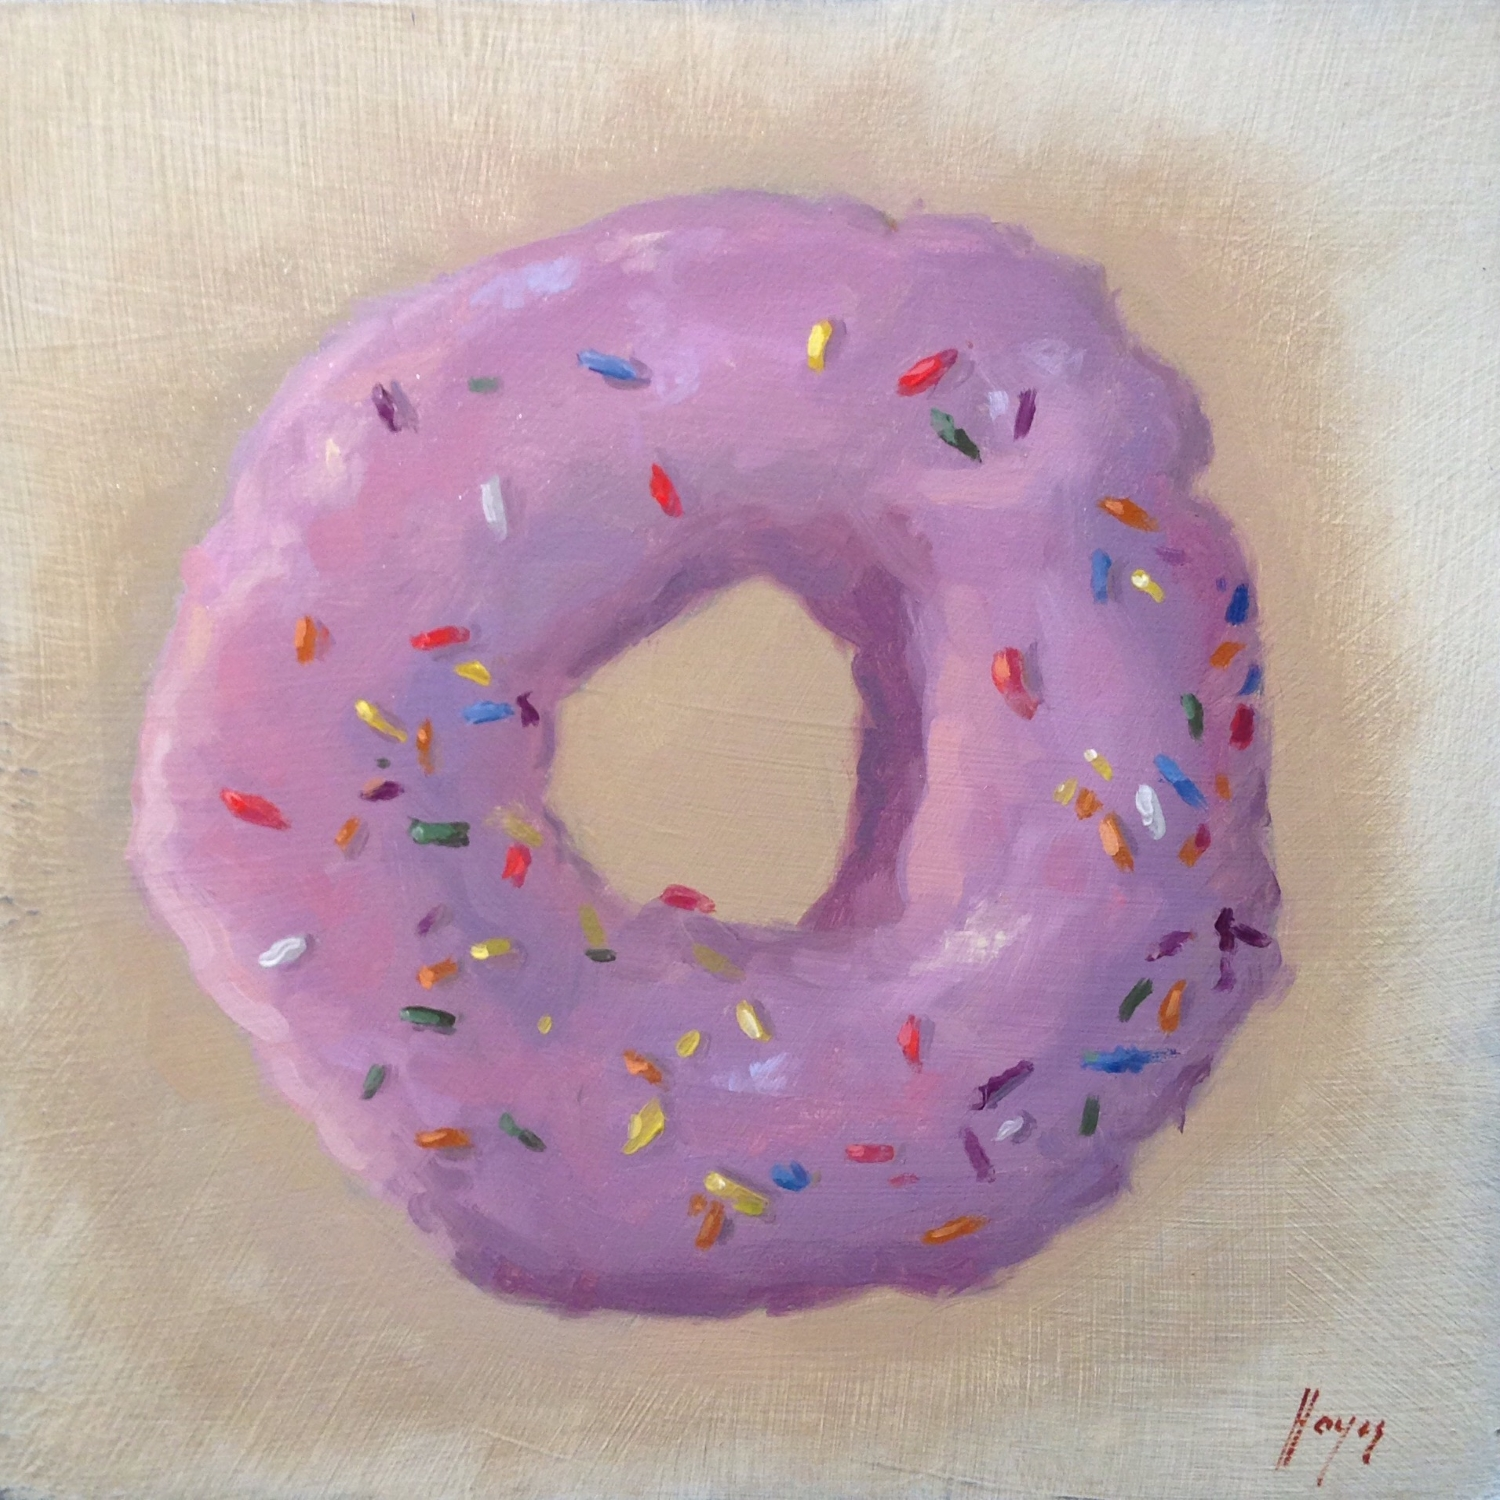 Jeffrey Hayes: Still Life Painting: Oil Painting: Strawberry Frosted